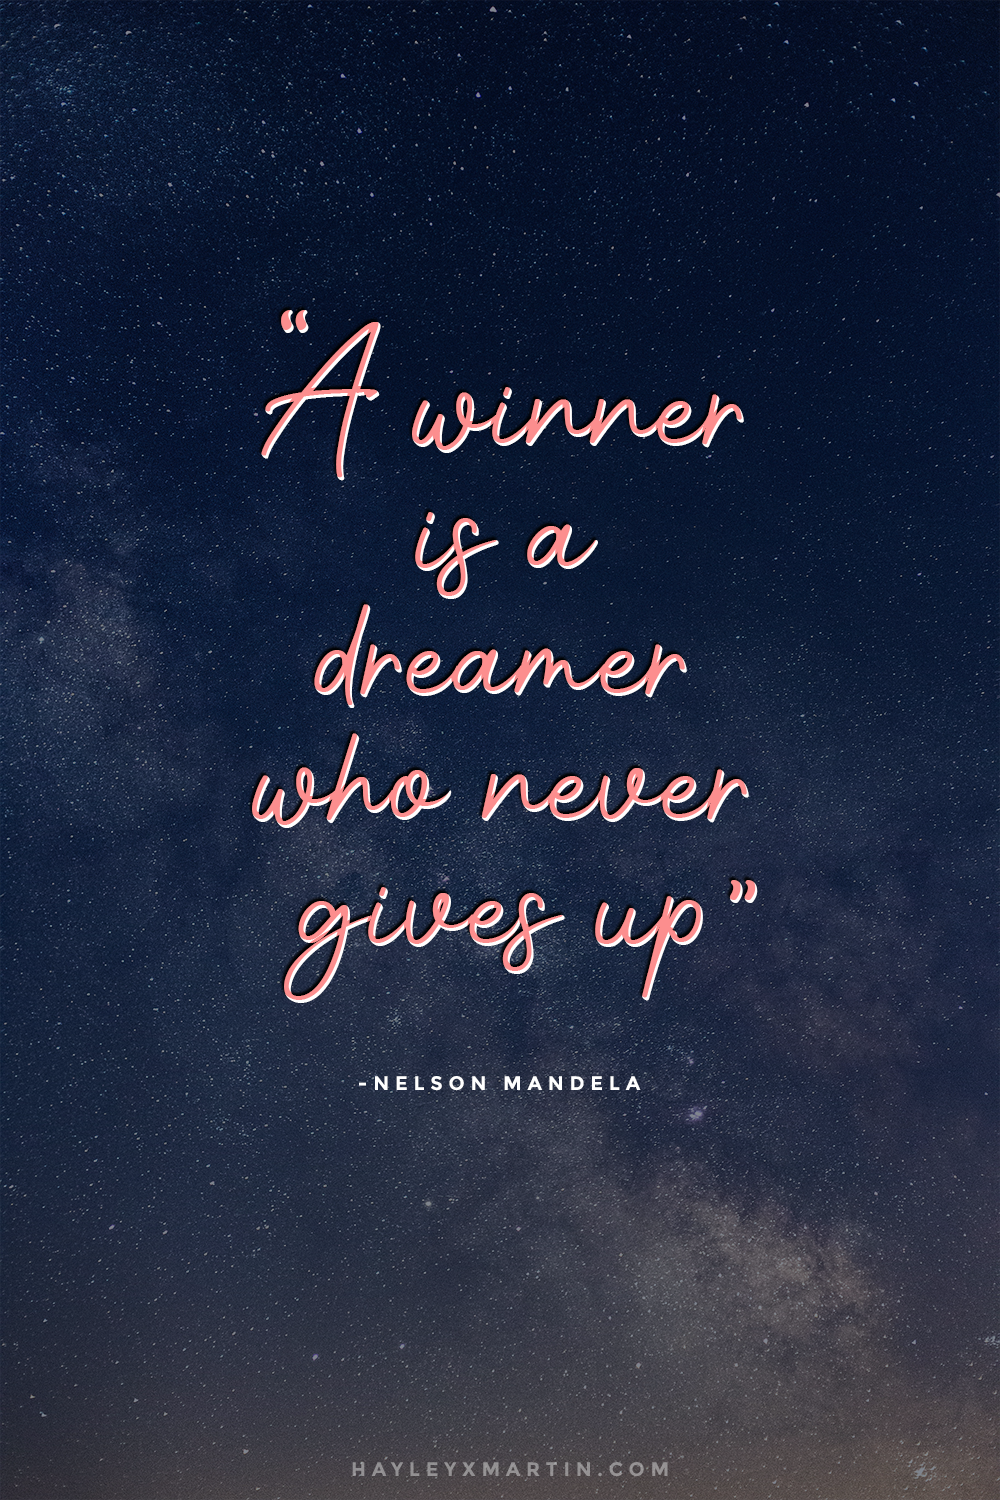 A WINNER IS A DREAMER WHO NEVER GIVES UP | HAYLEYXMARTIN